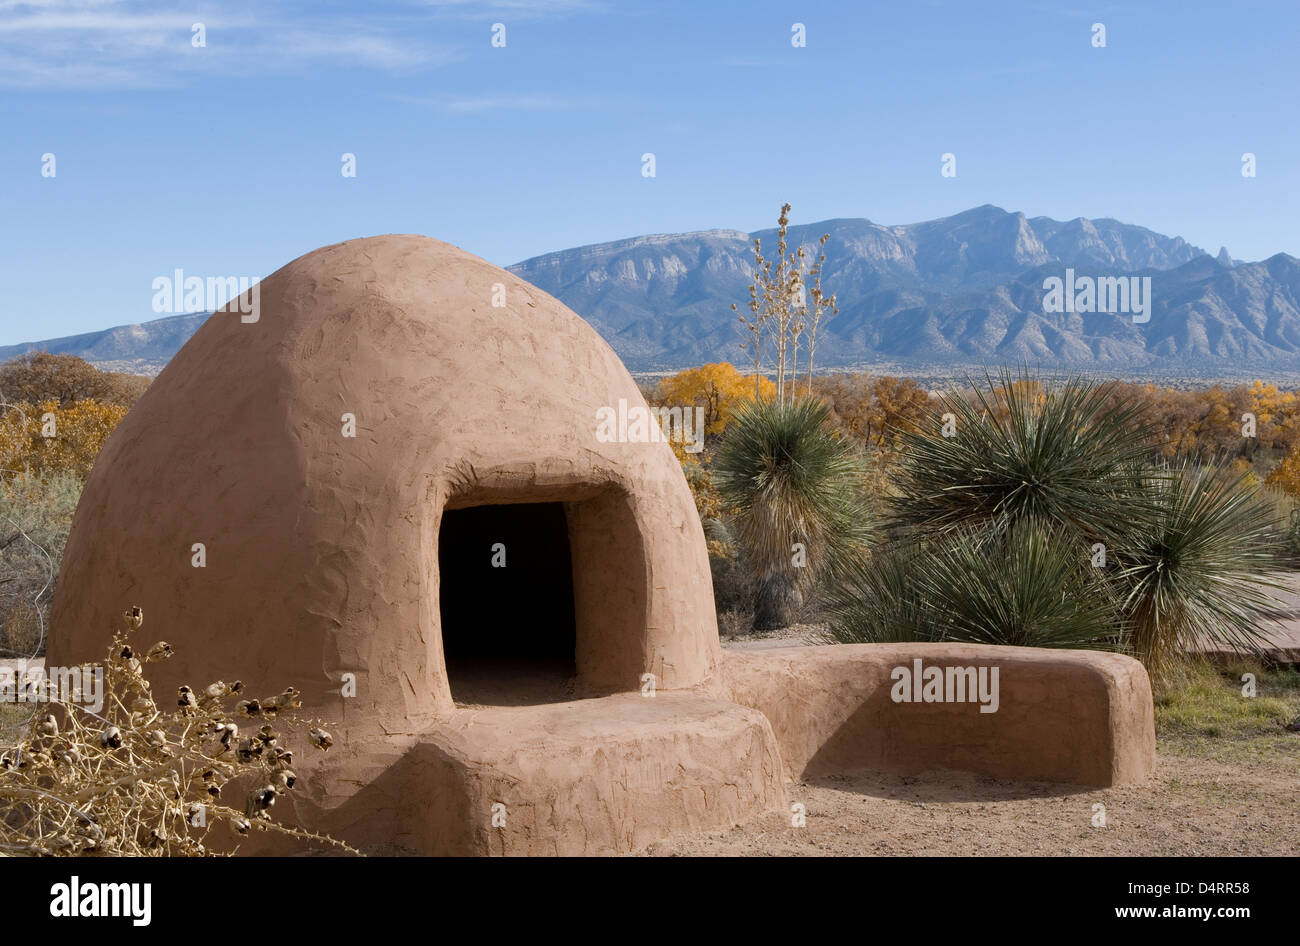 Image Result For Build A New Mexico Horno